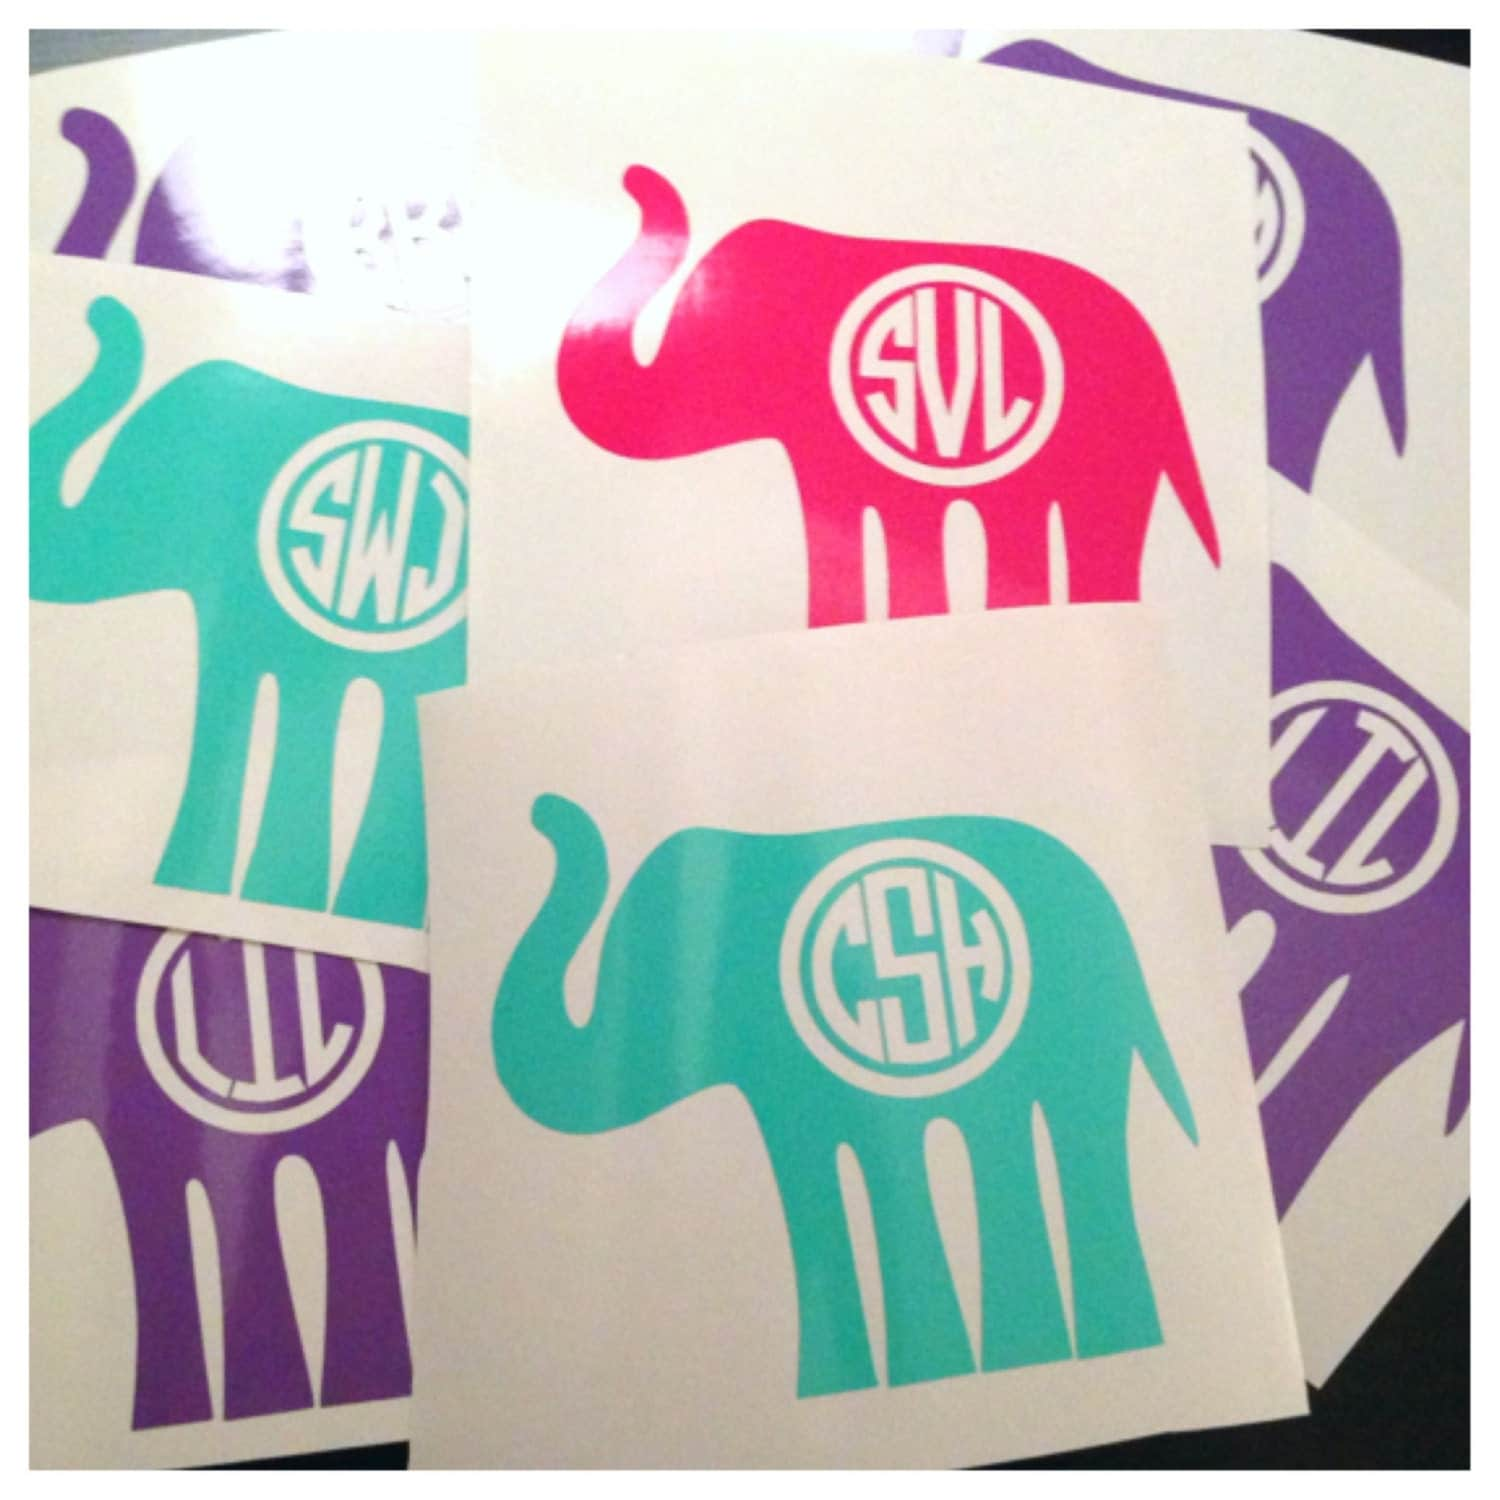 Monogrammed Elephant Decal With Cut Out Initials